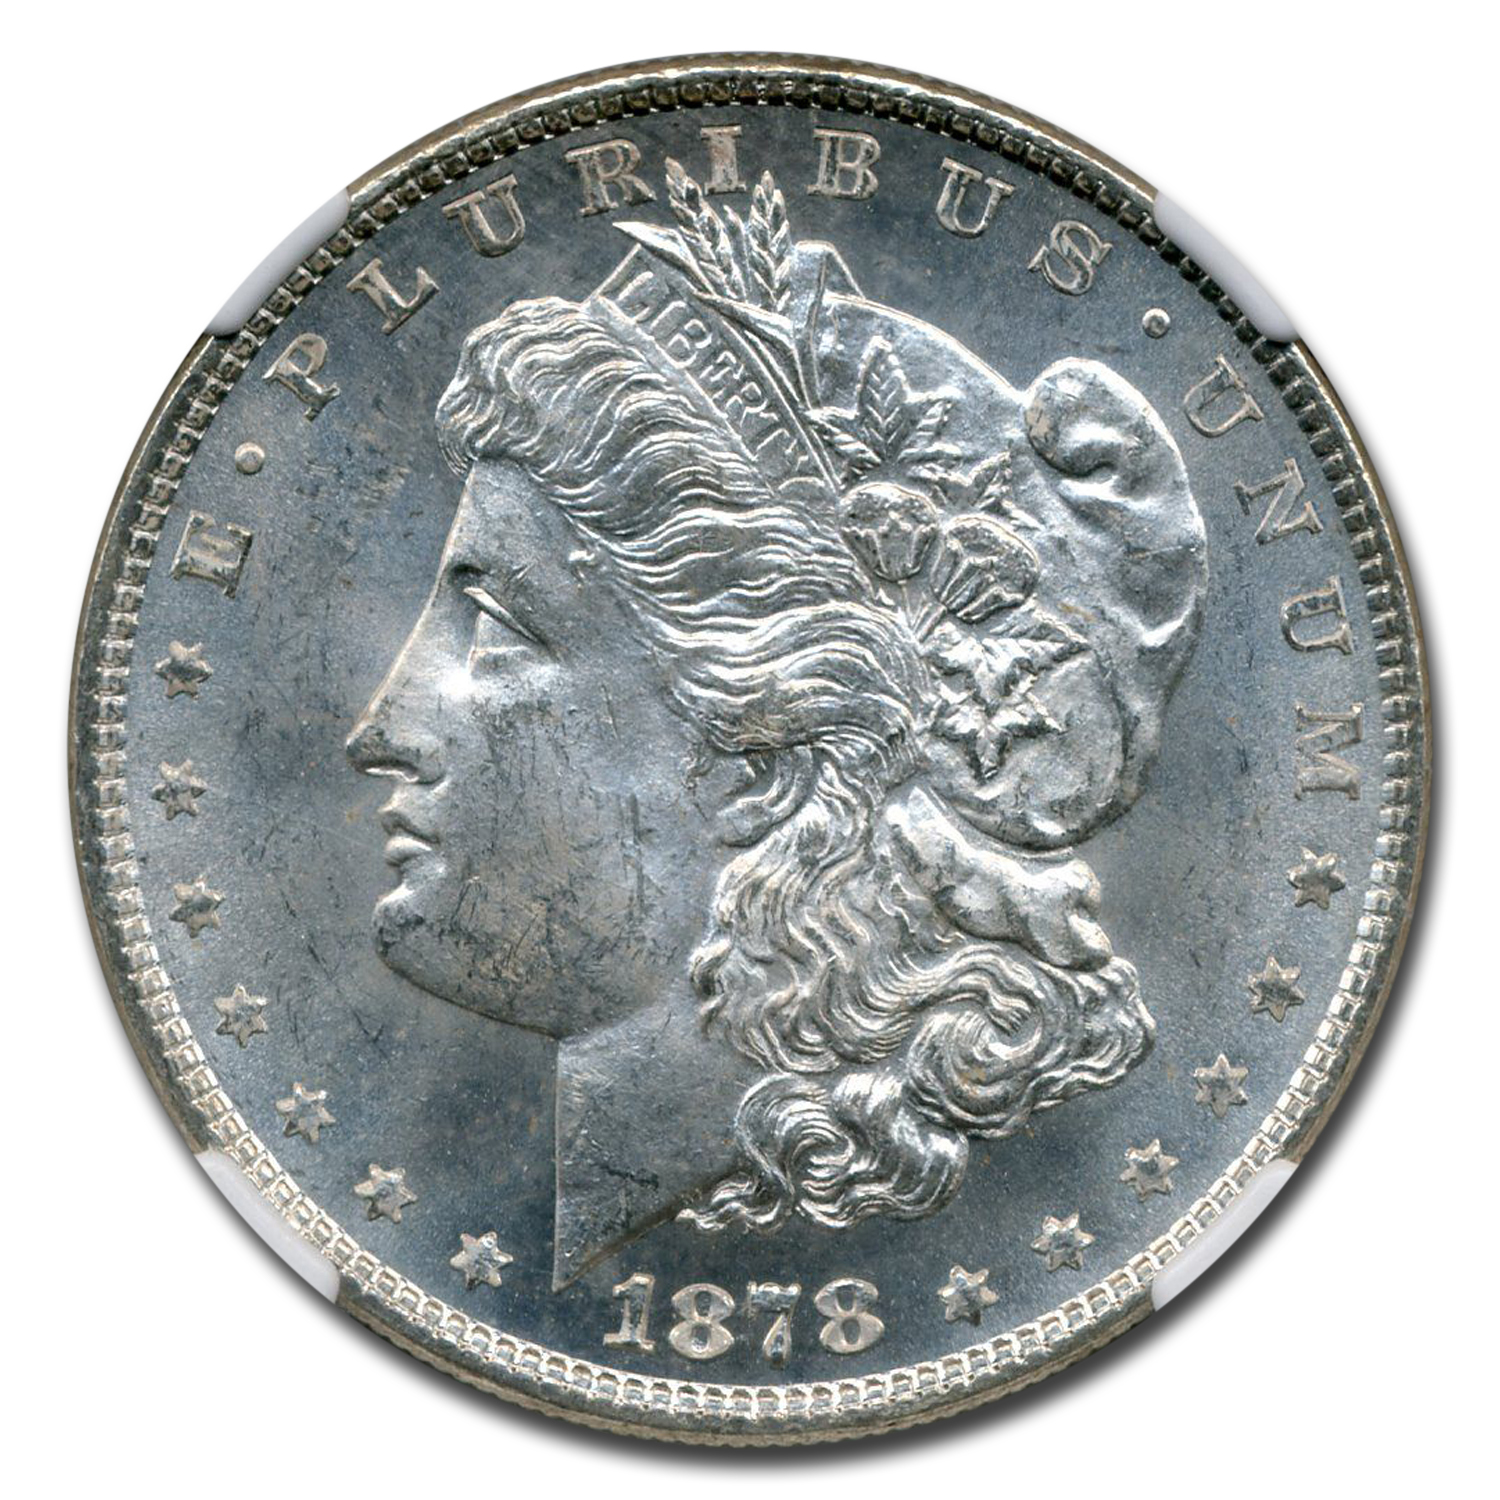 1878 Morgan Dollar - 8 Tailfeathers - MS-63 NGC